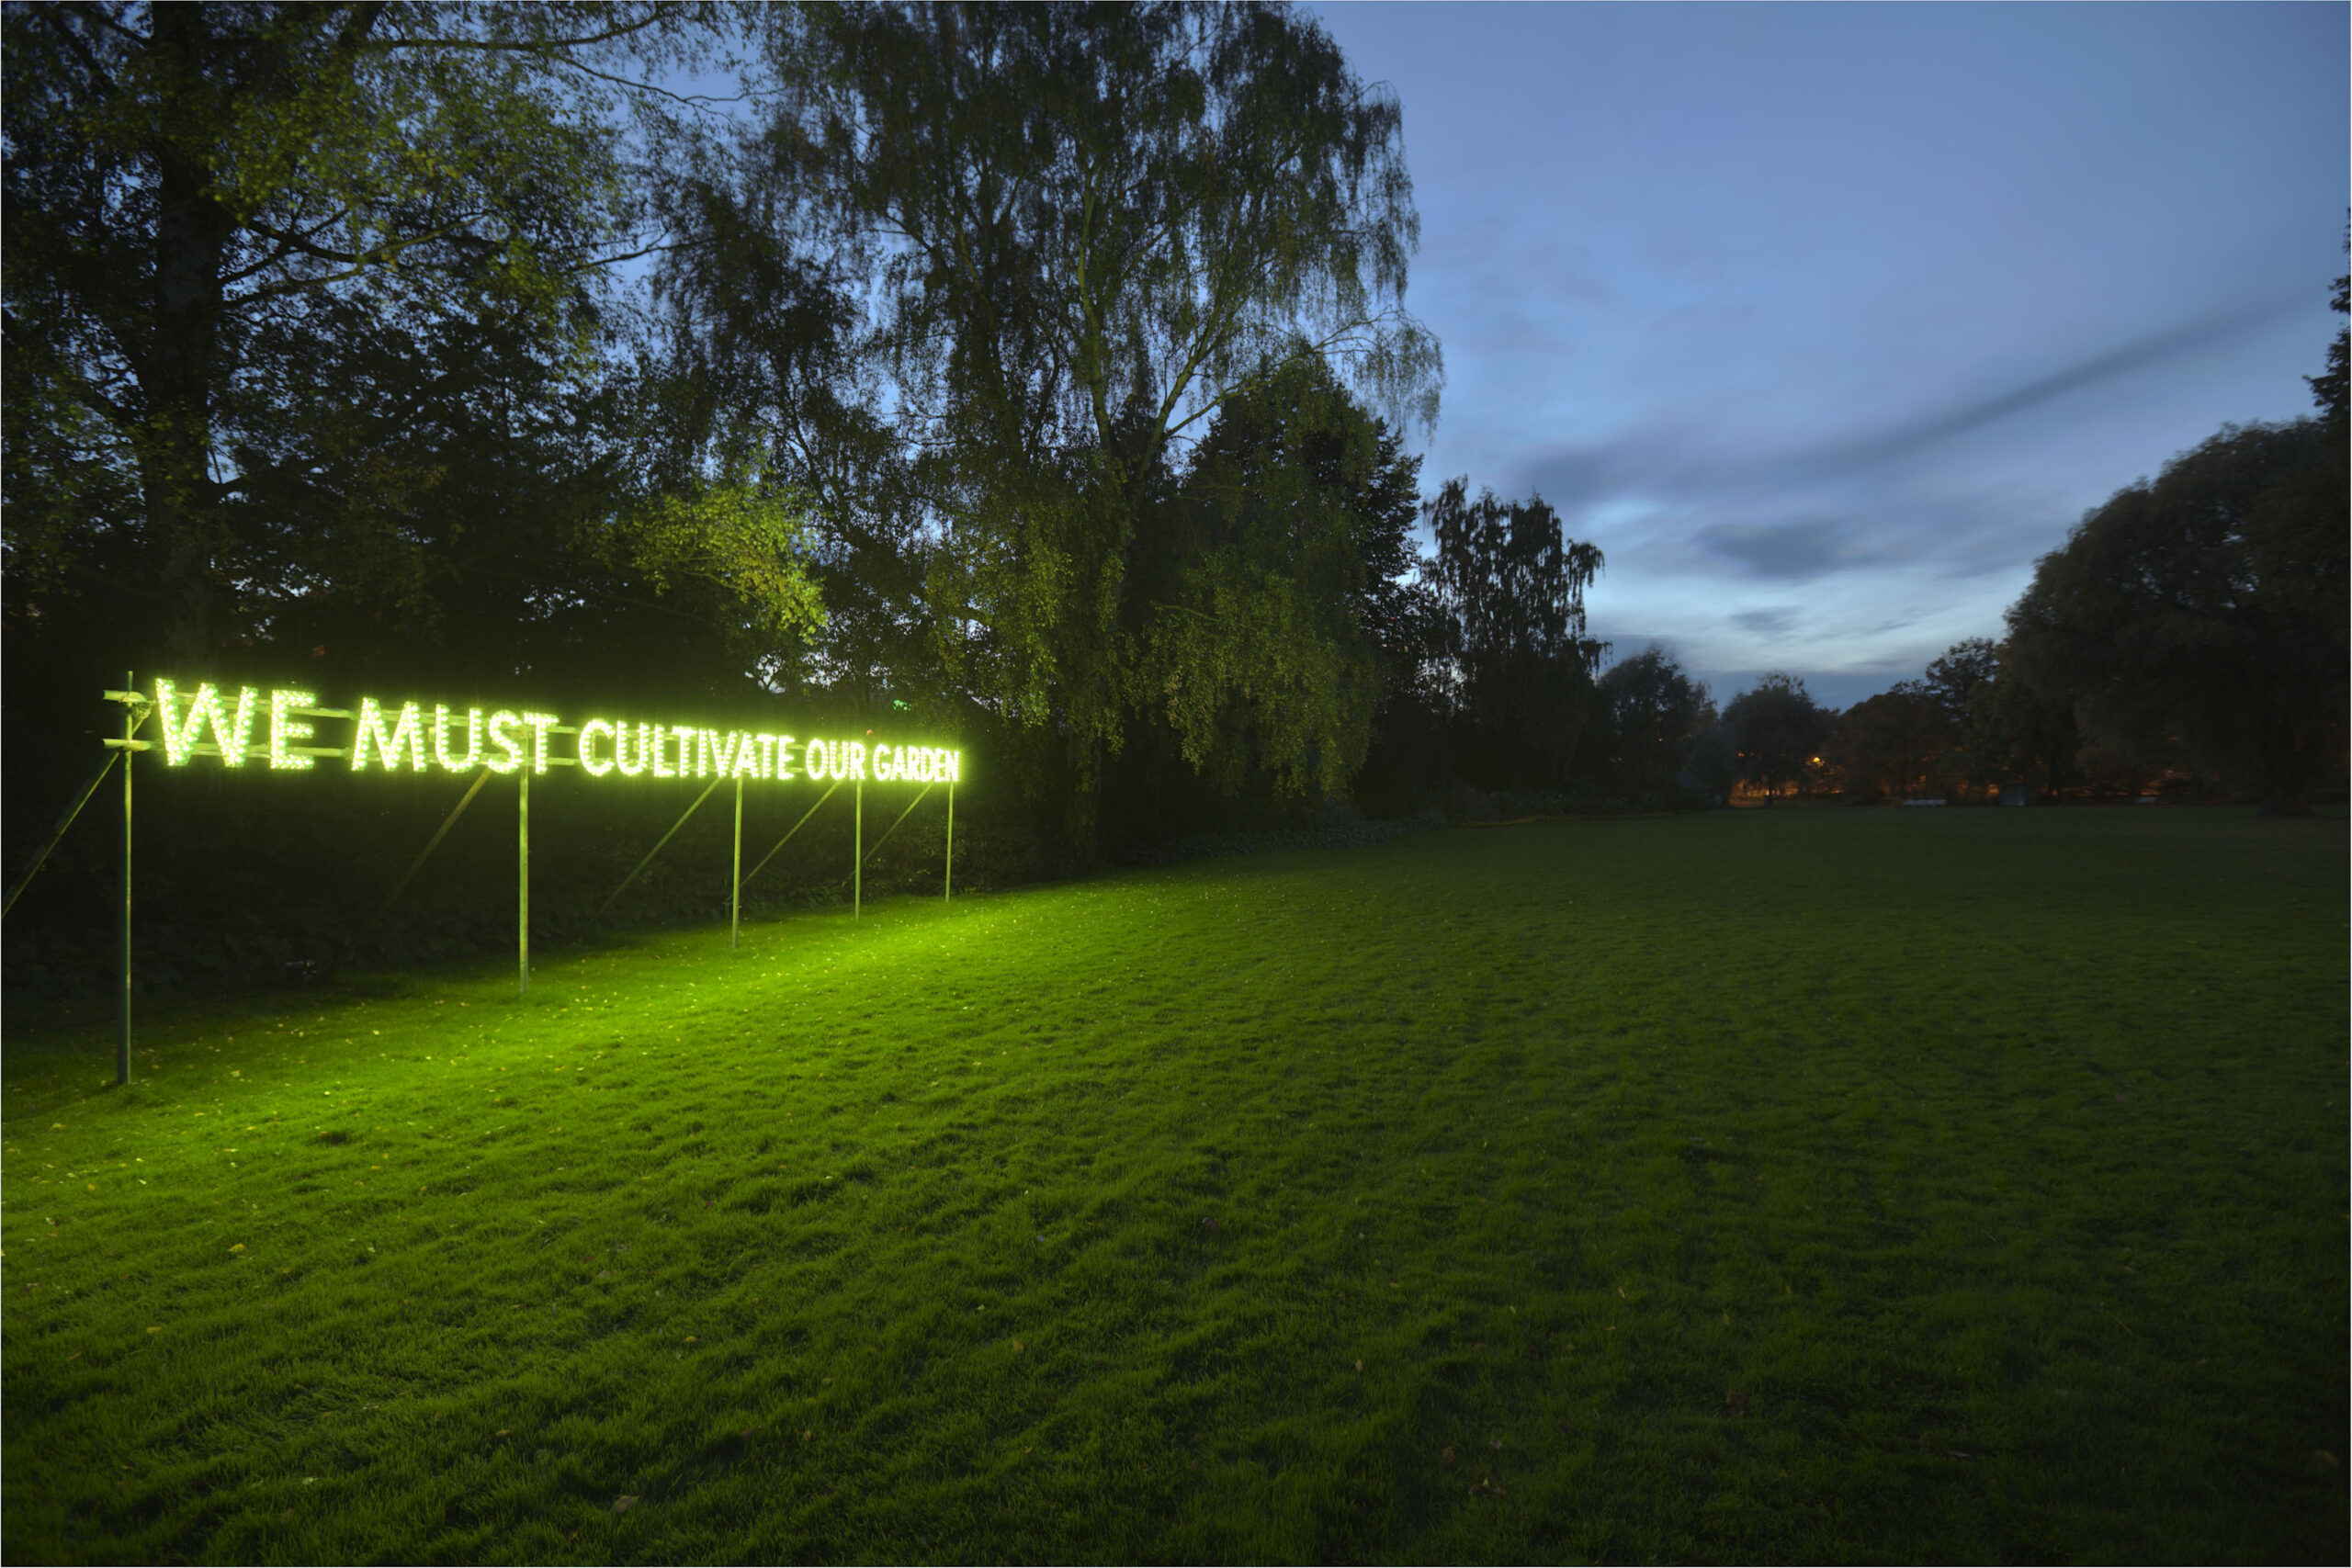 Nathan Coley, We Must Cultivate Our Garden, 2007. Photo: Jean-Baptiste Béranger